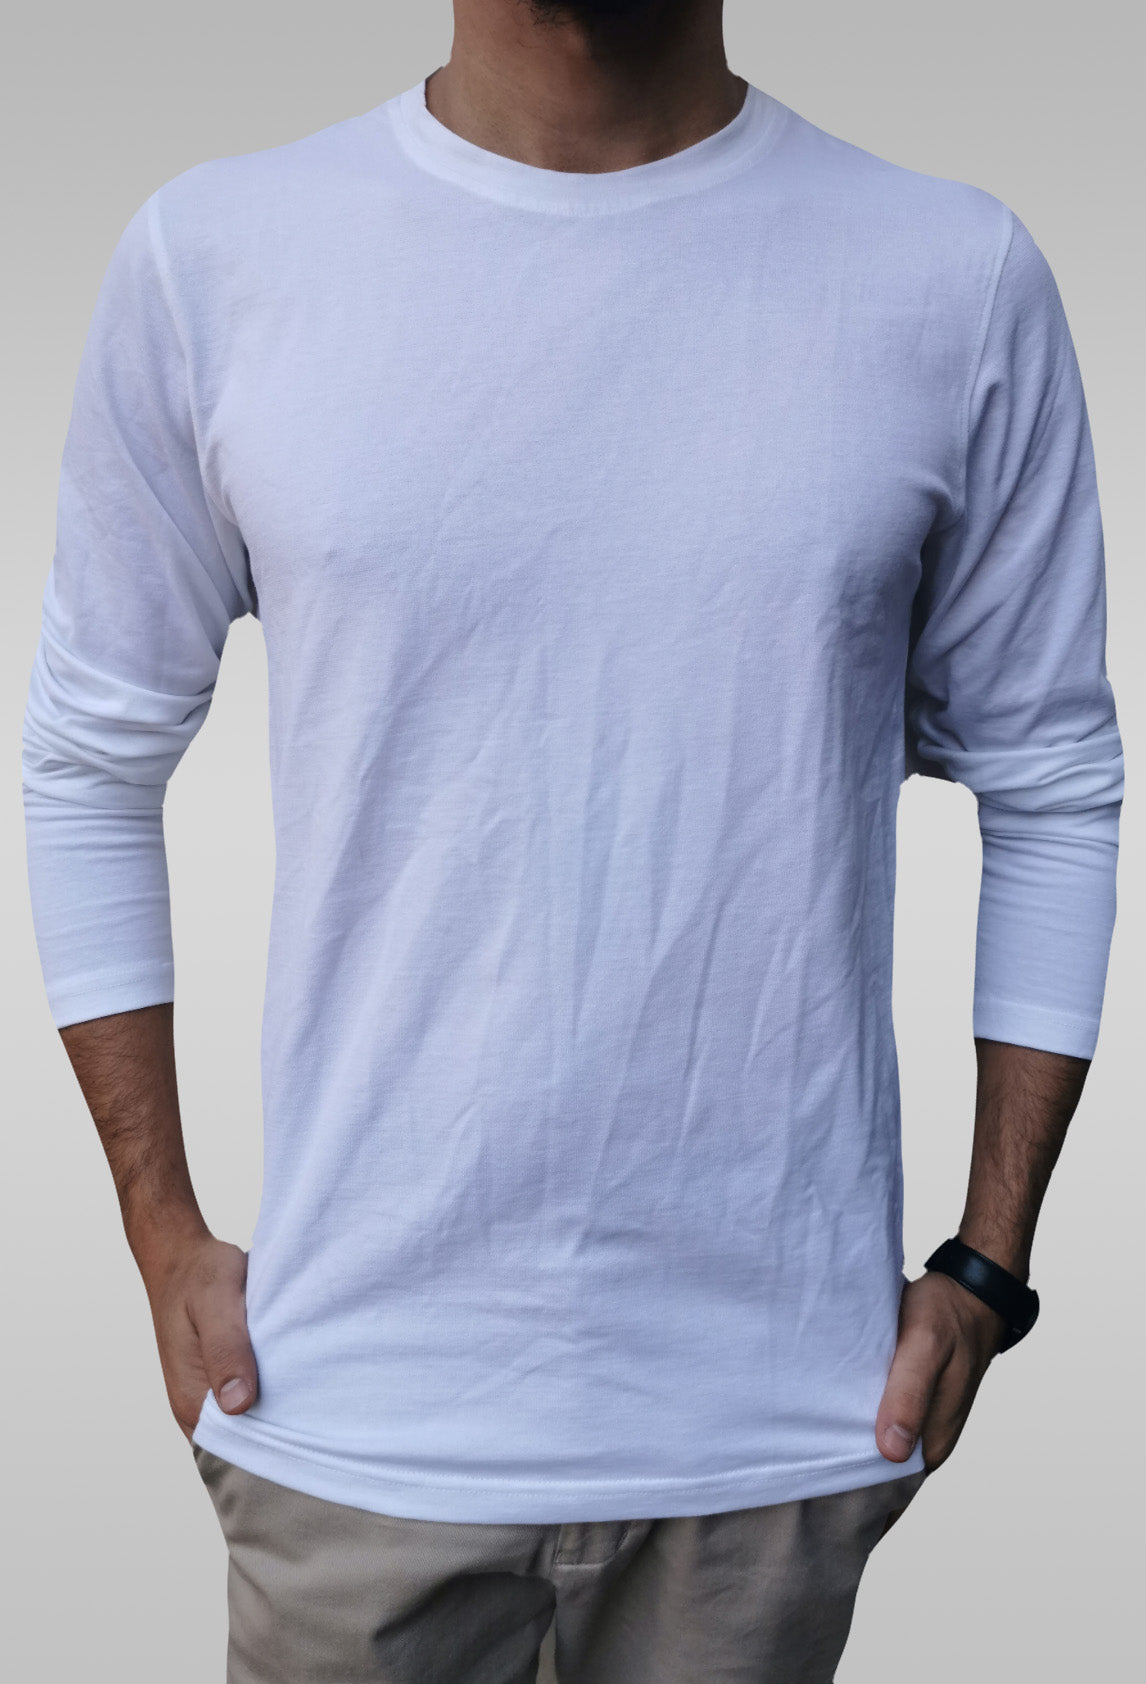 Long Sleeve White T-Shirt - Hillmarten